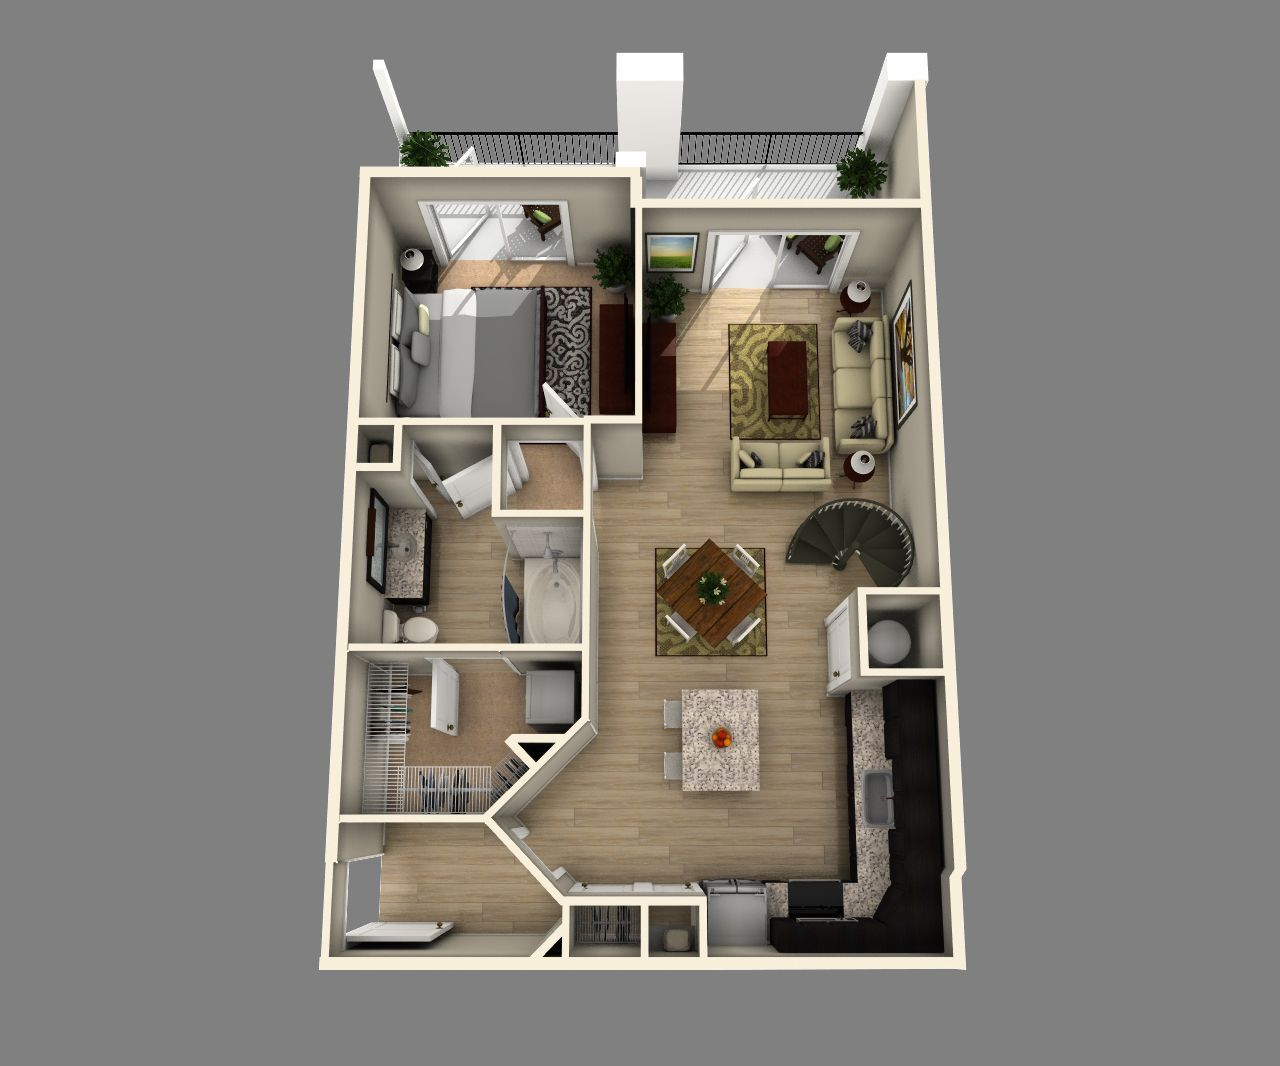 20 39 X 24 39 Floor Plan Google Search Projects To Try Pinterest Google Search House And